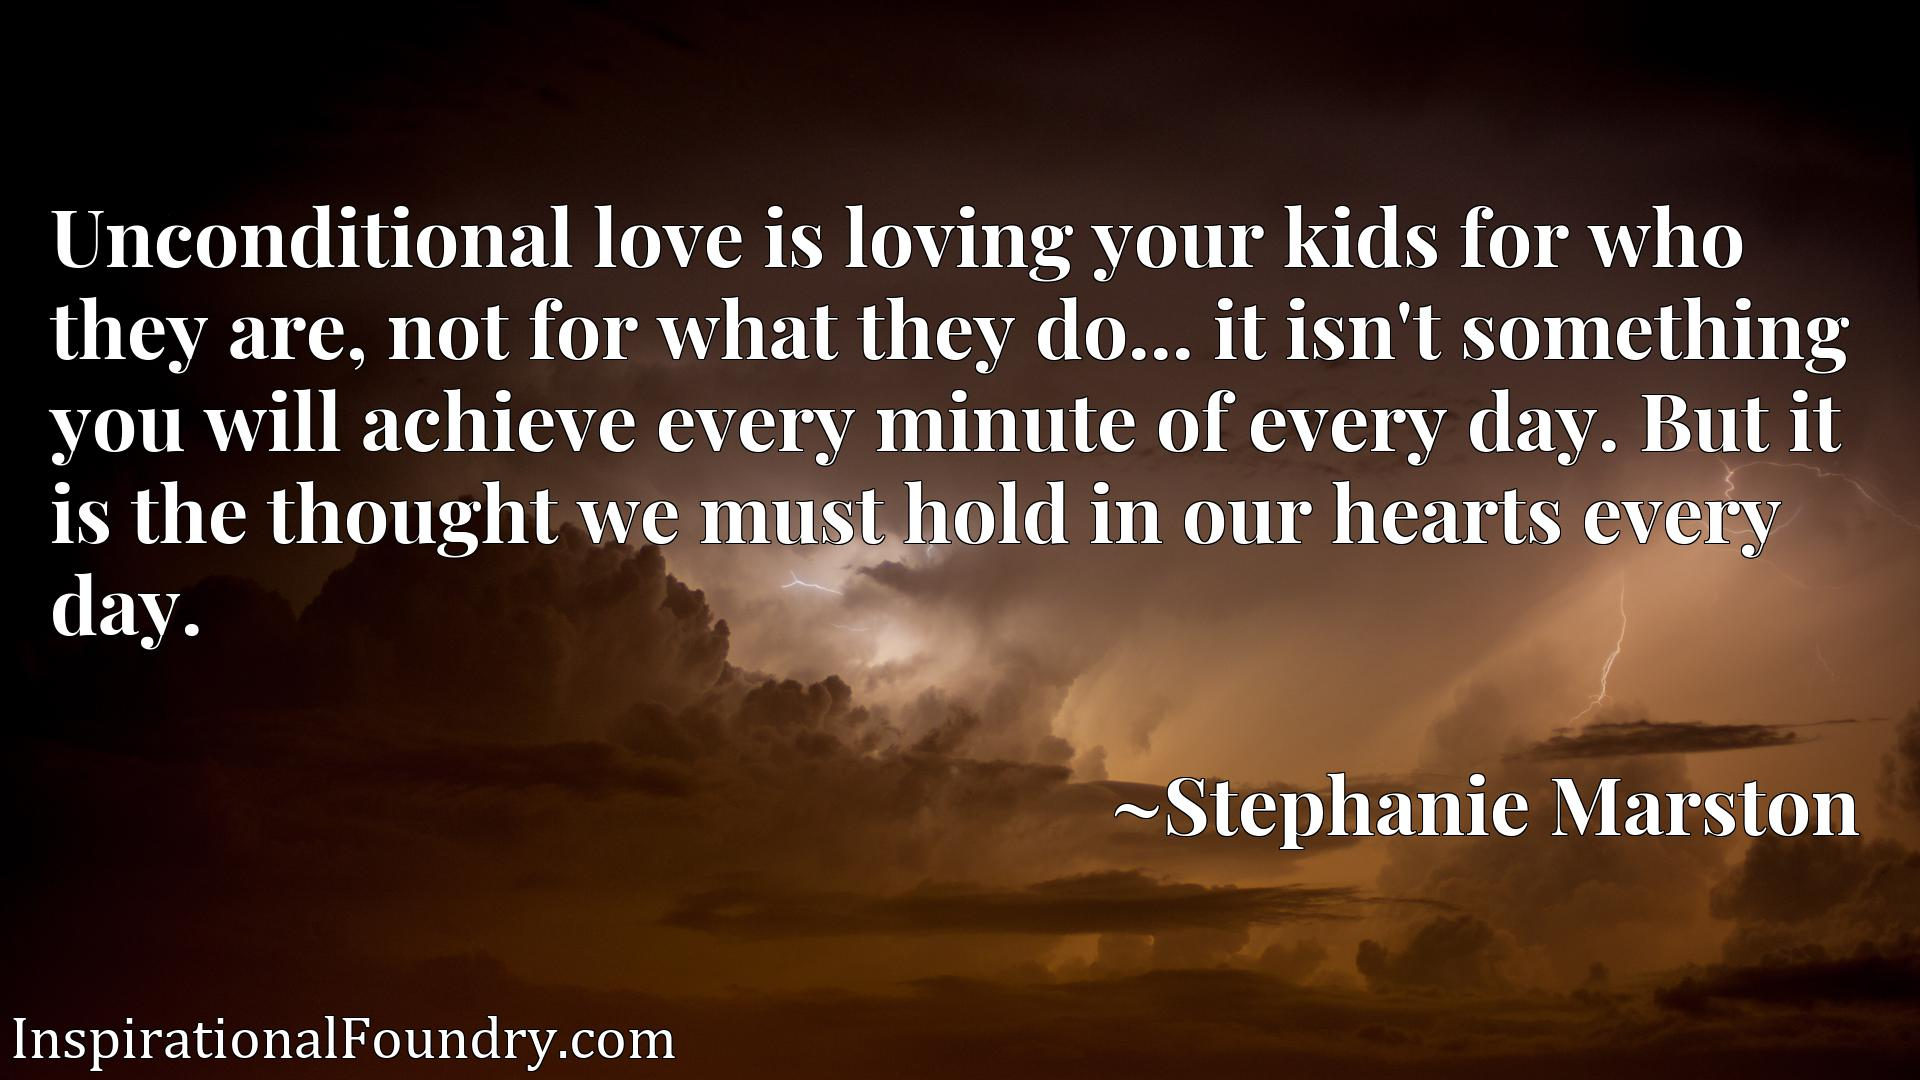 Unconditional love is loving your kids for who they are, not for what they do... it isn't something you will achieve every minute of every day. But it is the thought we must hold in our hearts every day.